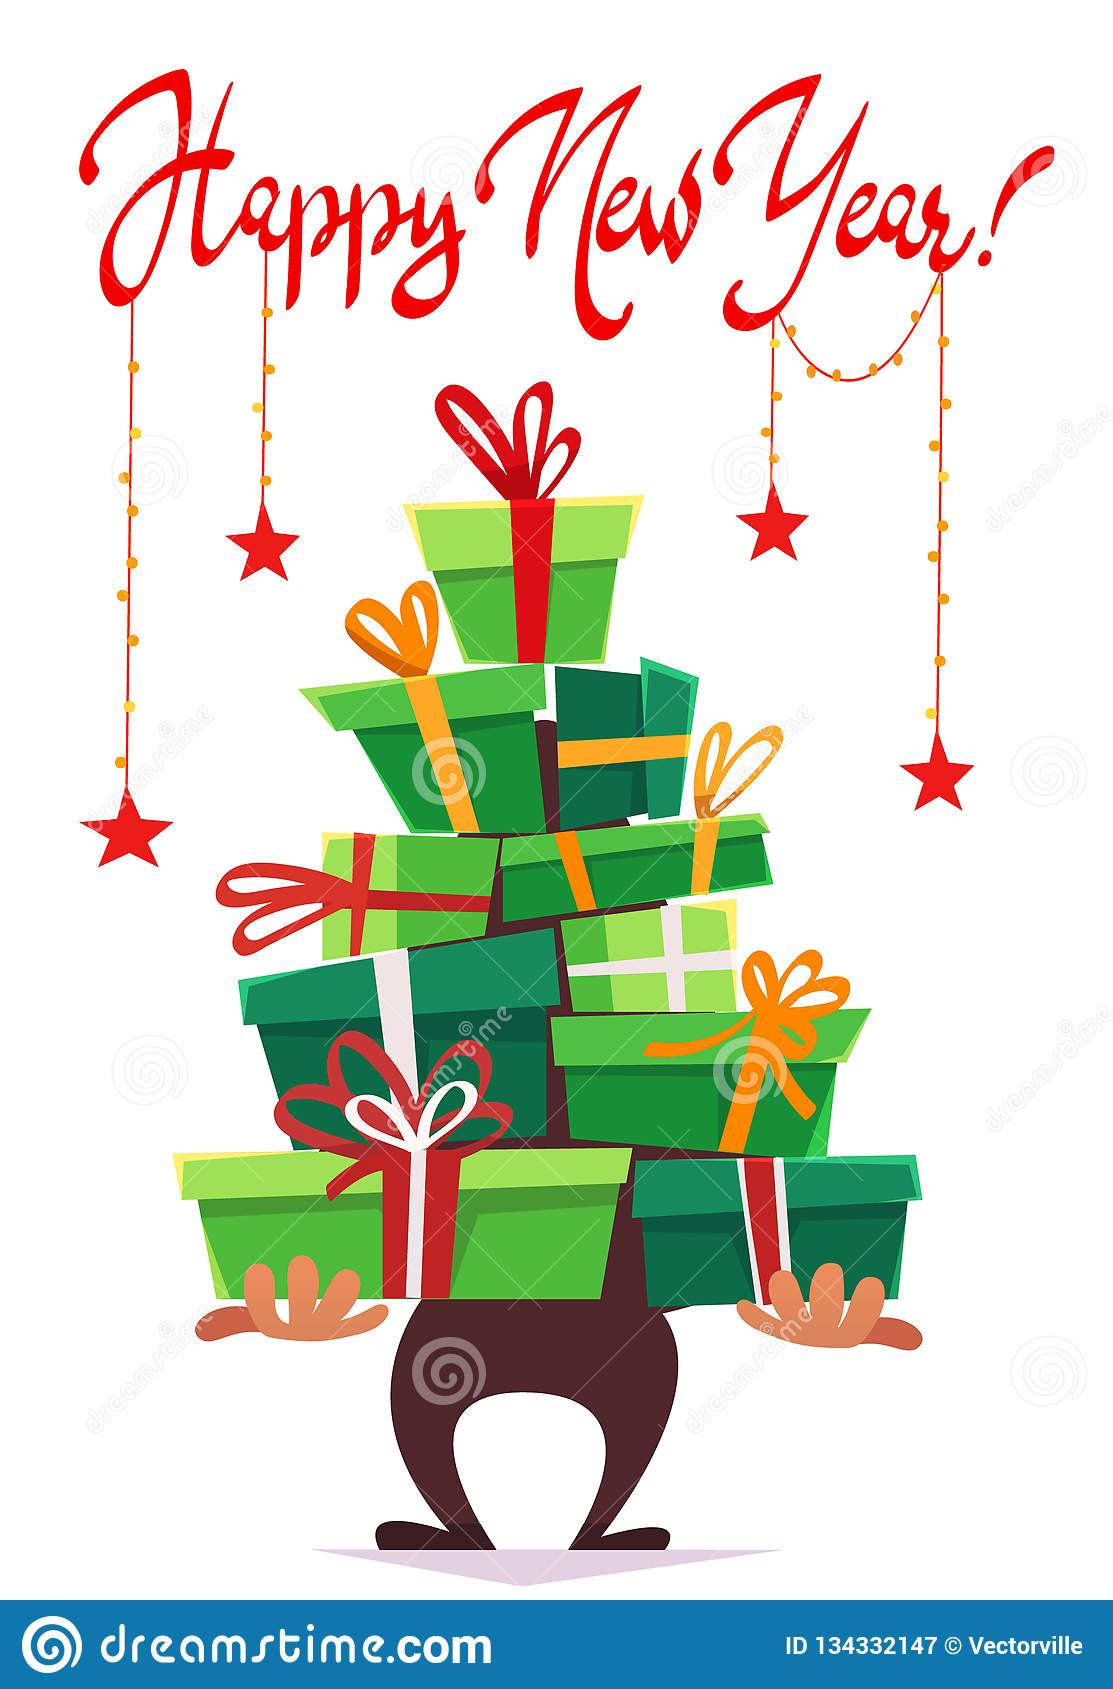 Happy new year post card greeting party invitation , lot many gift boxes of gifts stack triangle stand christmas tree form with ri